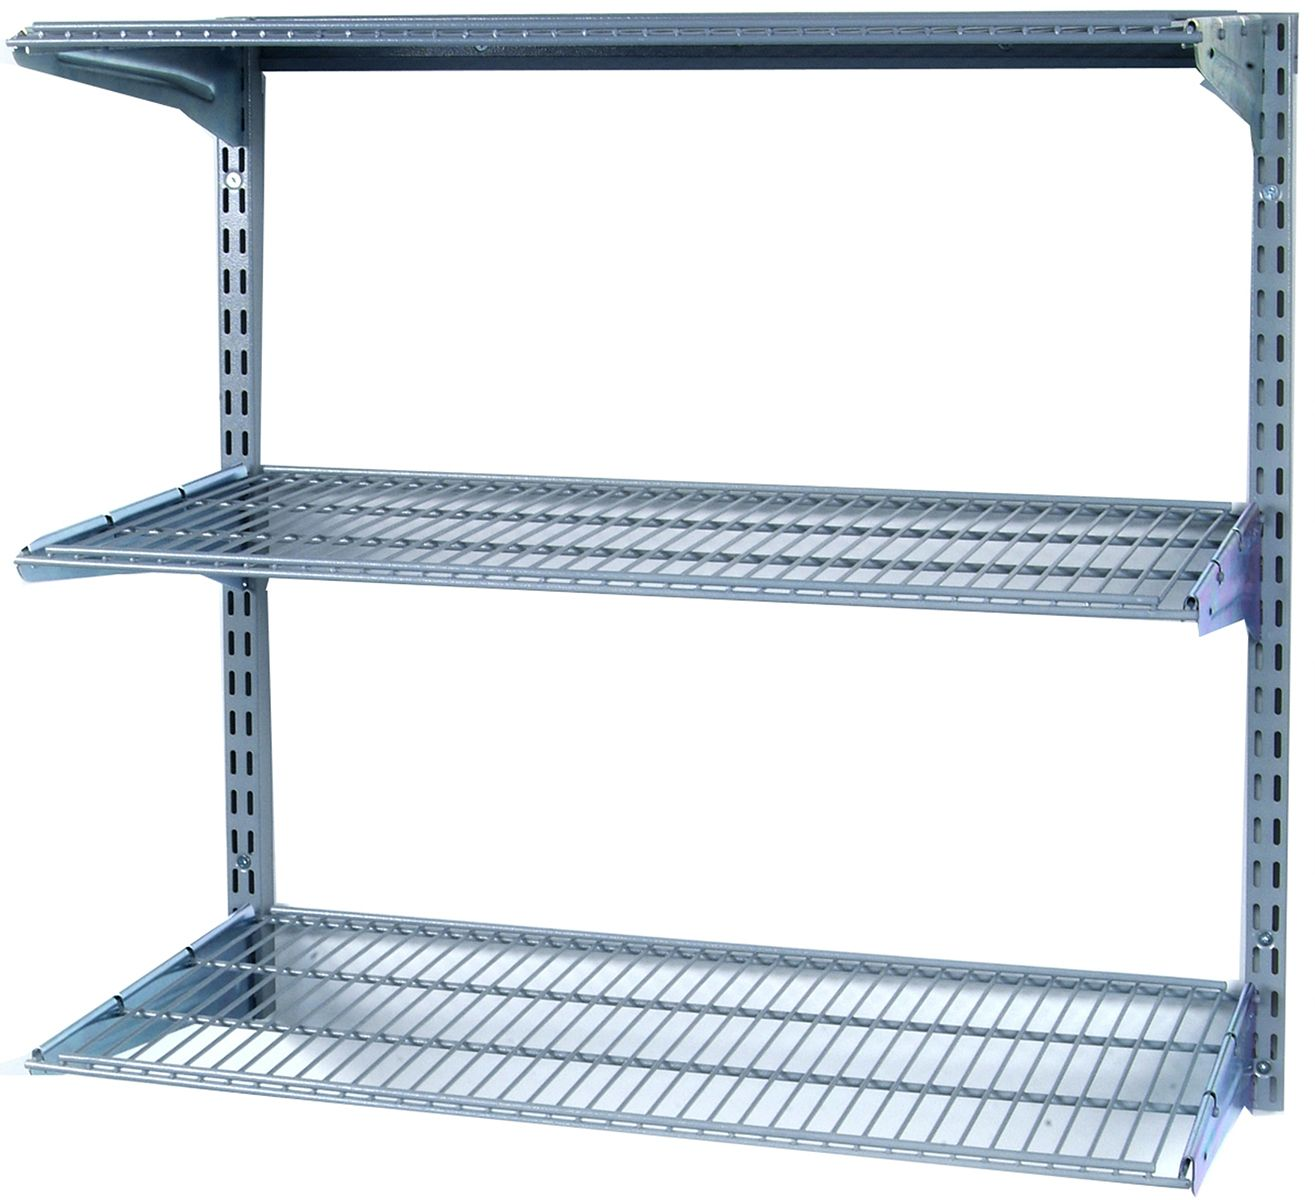 Storability 33 In L X 31 5 In H Wall Mount Shelving Unit With 3 Wire Shelves And Mounting Hardware 1795 0 The Home Depot Wall Mounted Shelves Wire Shelving Steel Wall